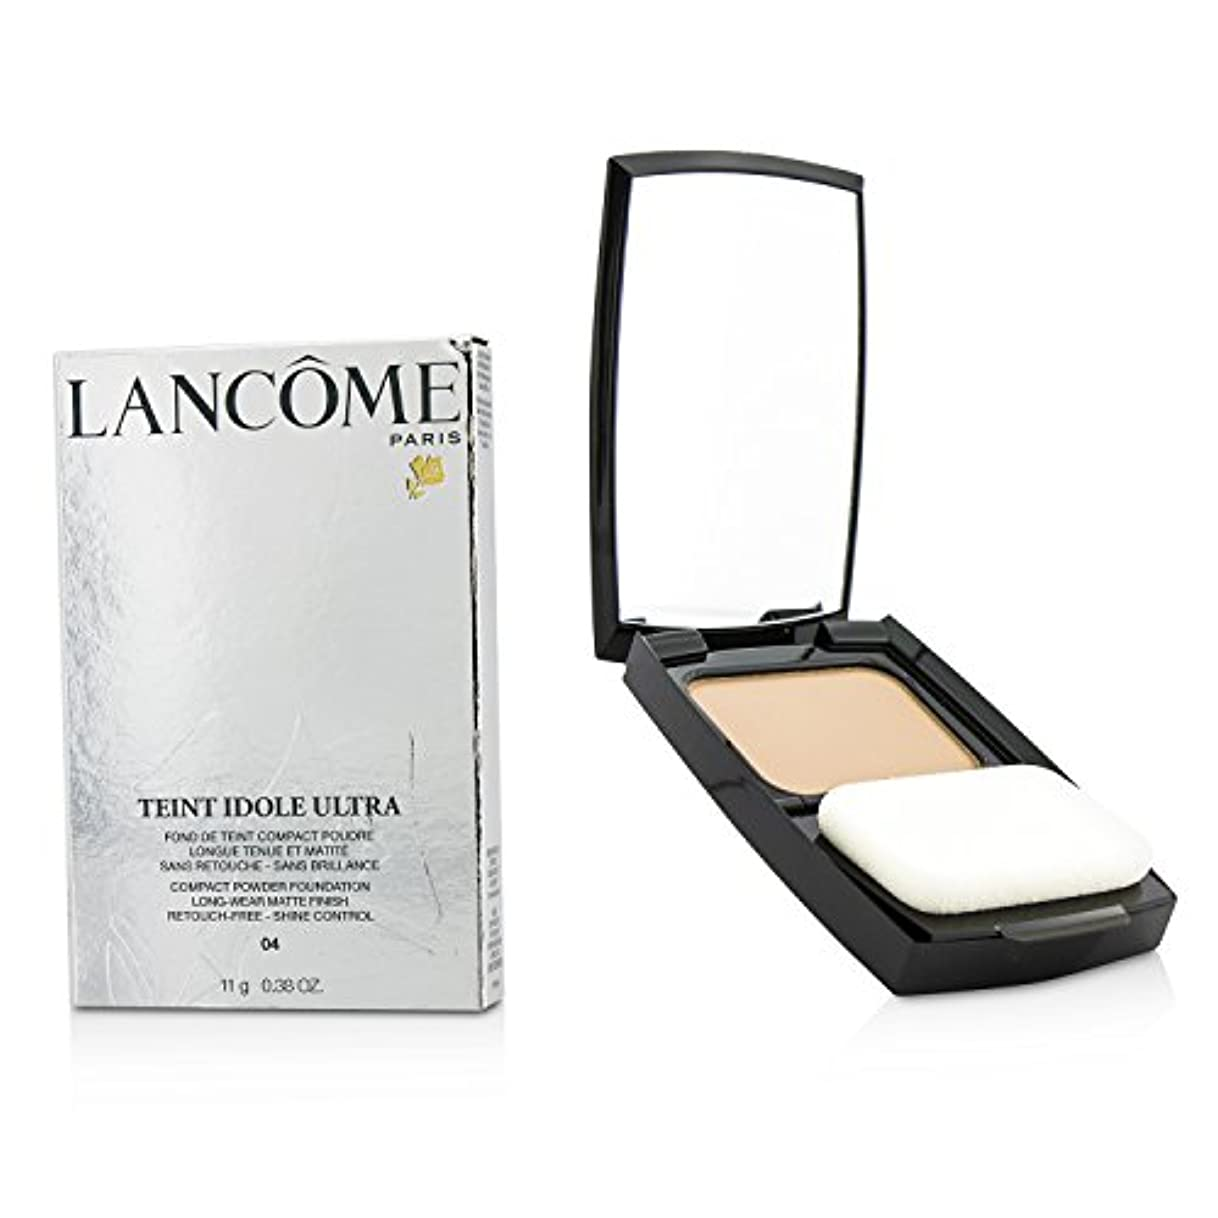 愛国的な絶え間ないクランシーランコム Teint Idole Ultra Compact Powder Foundation (Long Wear Matte Finish) - #04 Beige Nature 11g/0.38oz並行輸入品